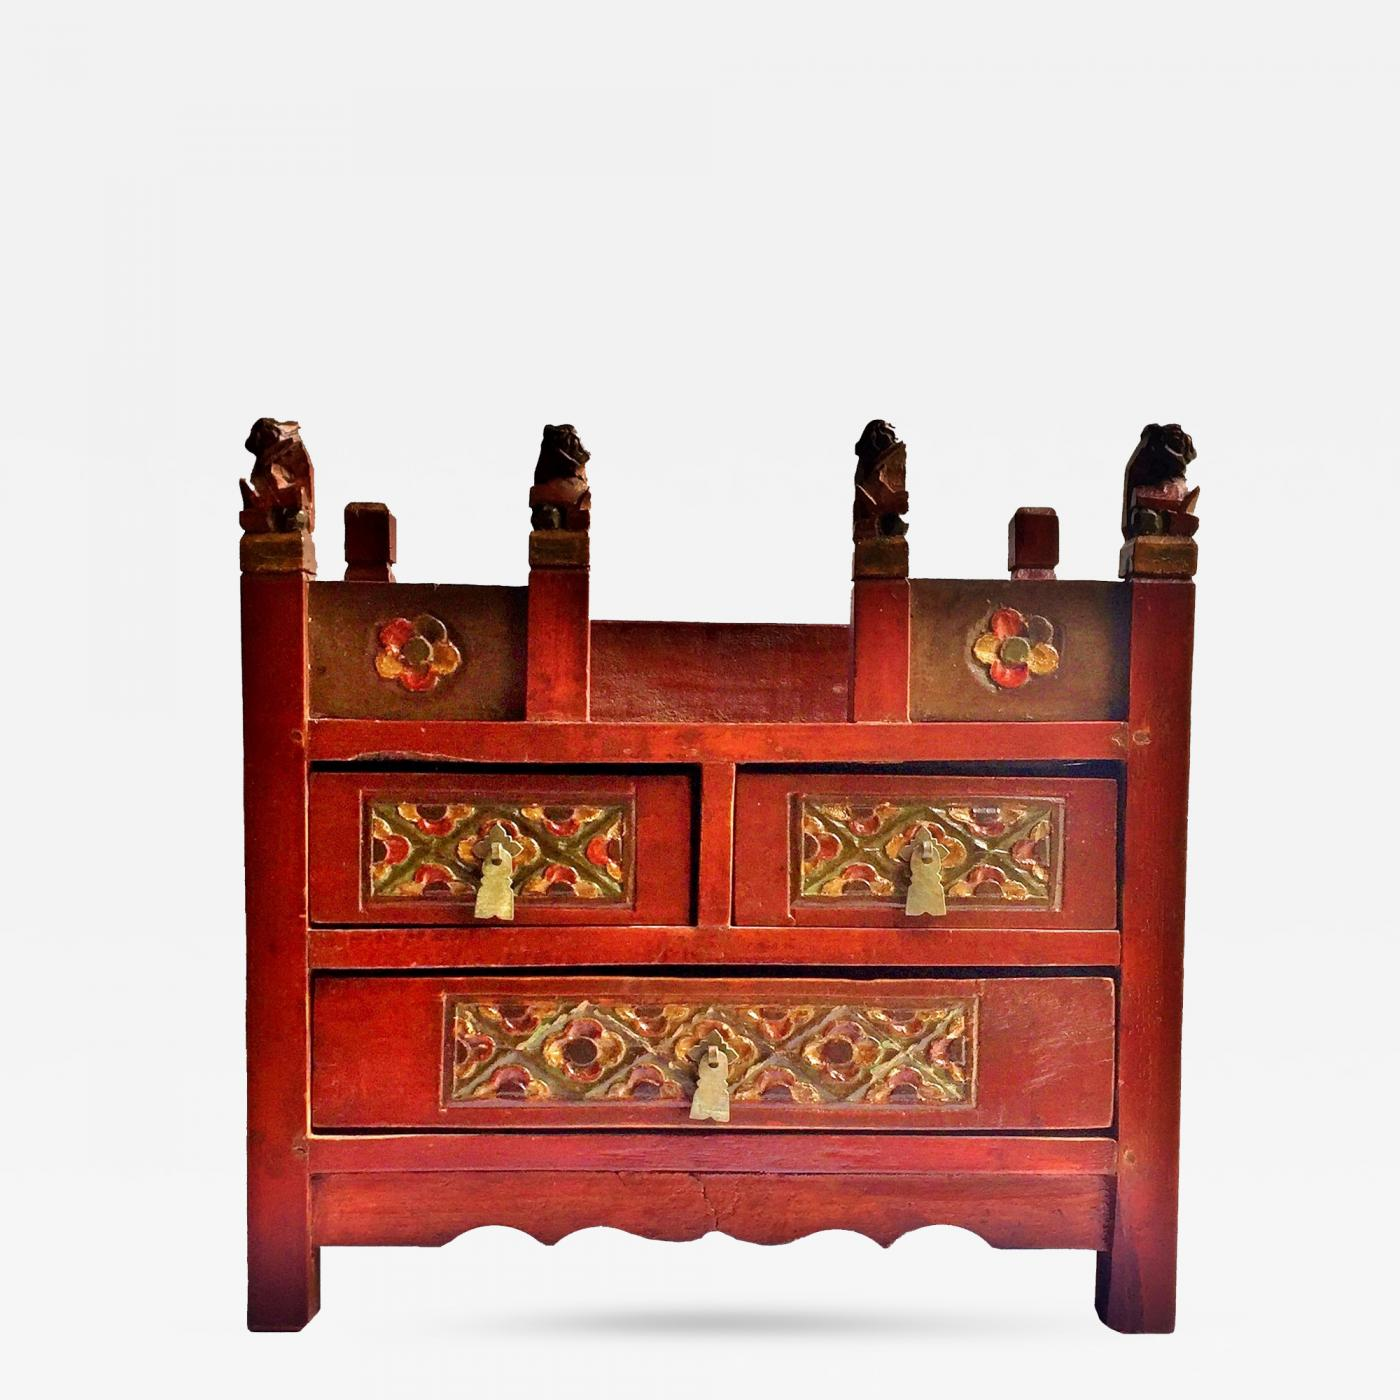 red lacquered furniture. listings / decorative arts objects miniature furniture red lacquered